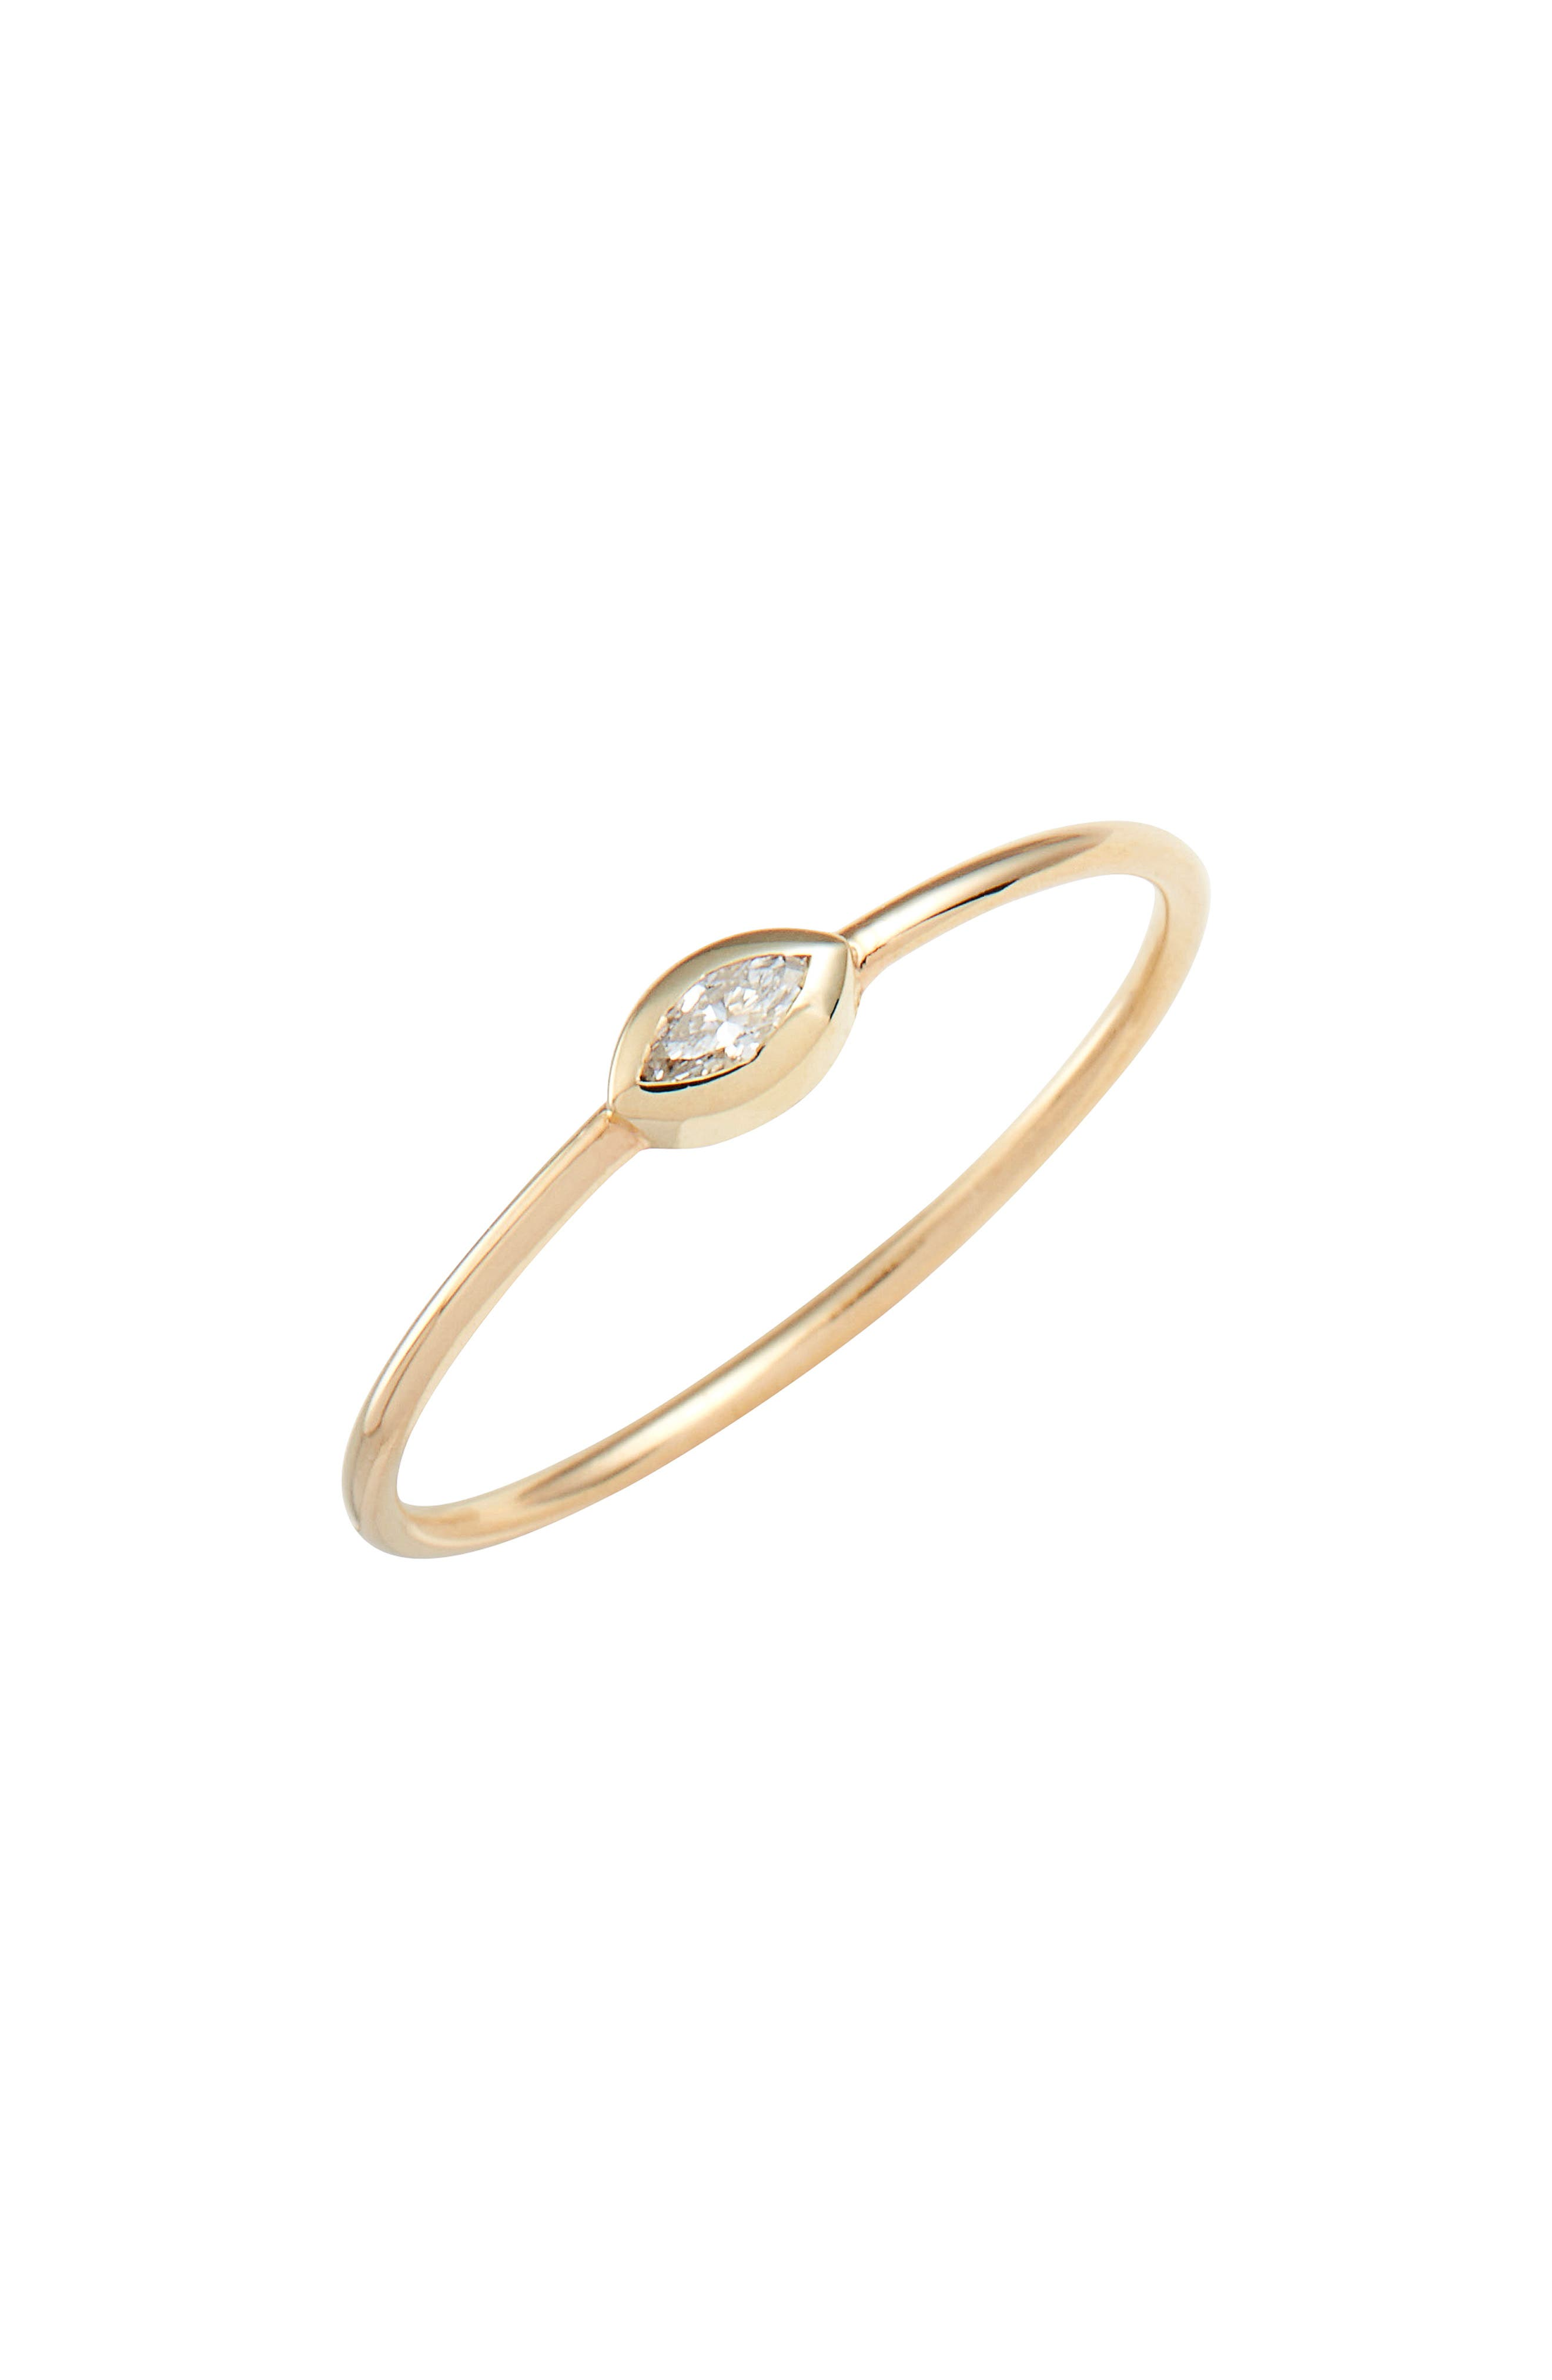 ZOË CHICCO Marquise Diamond Stackable Ring